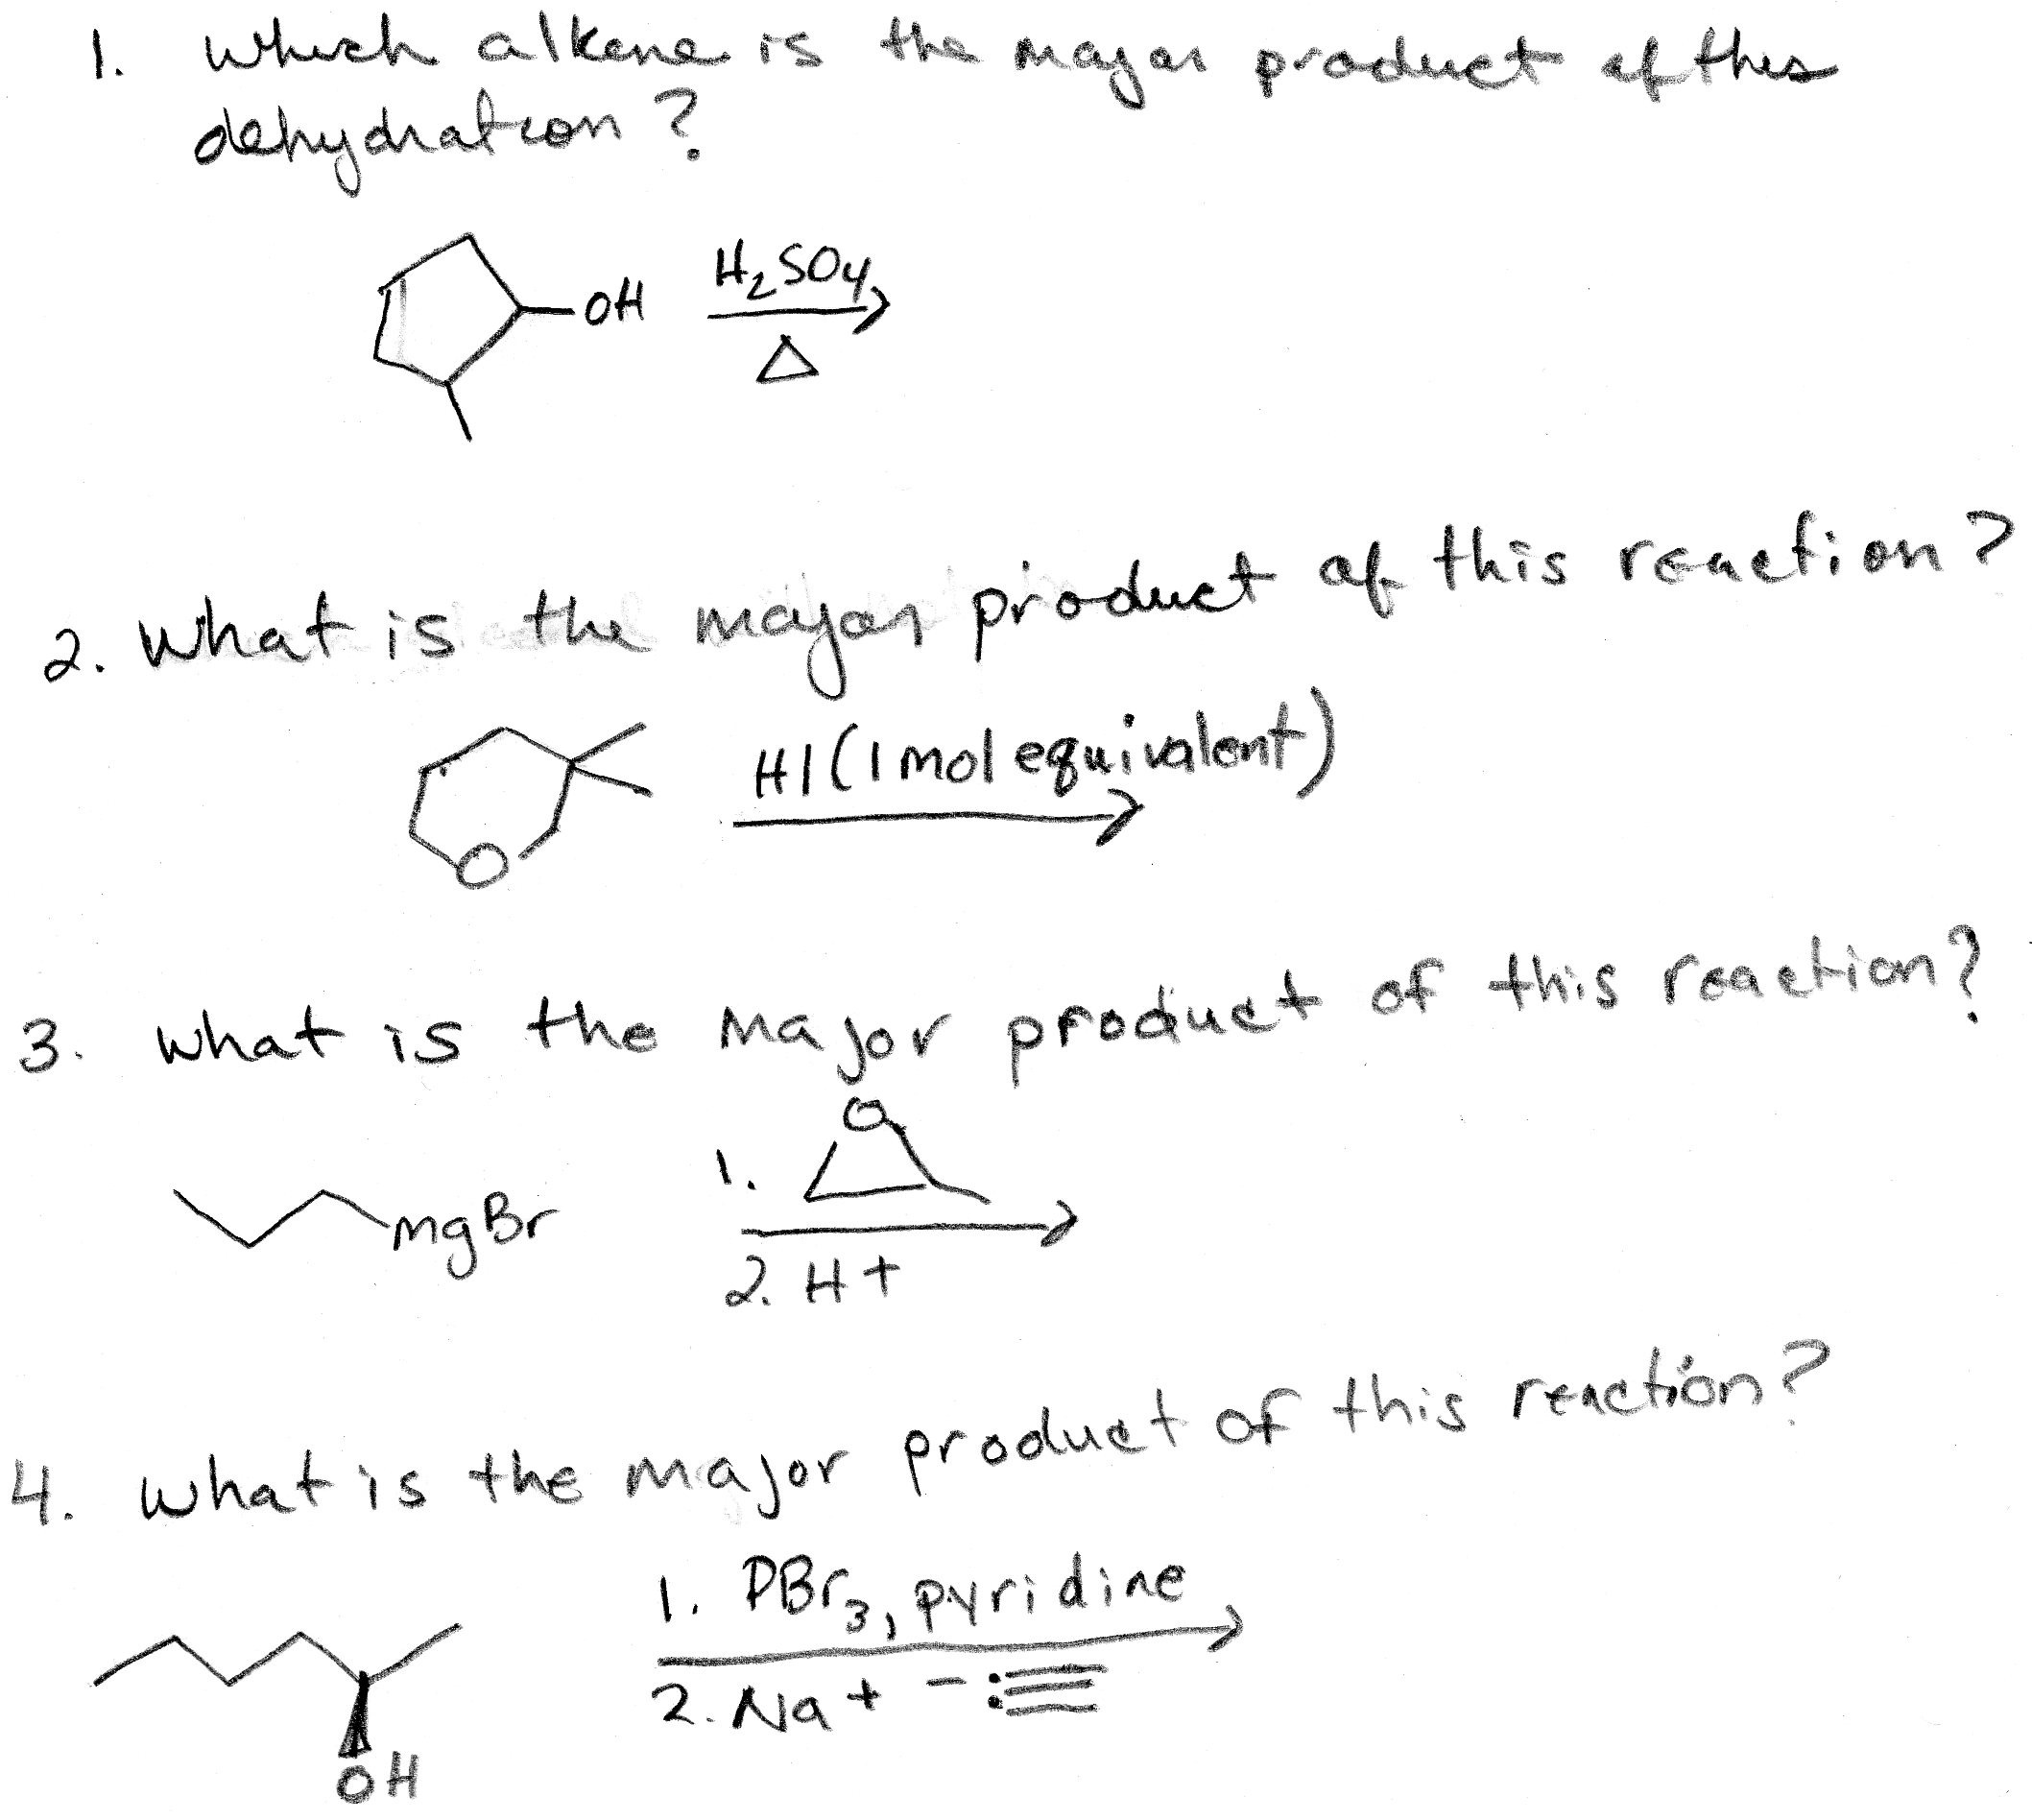 Which alkene is the major product of this dehydrat